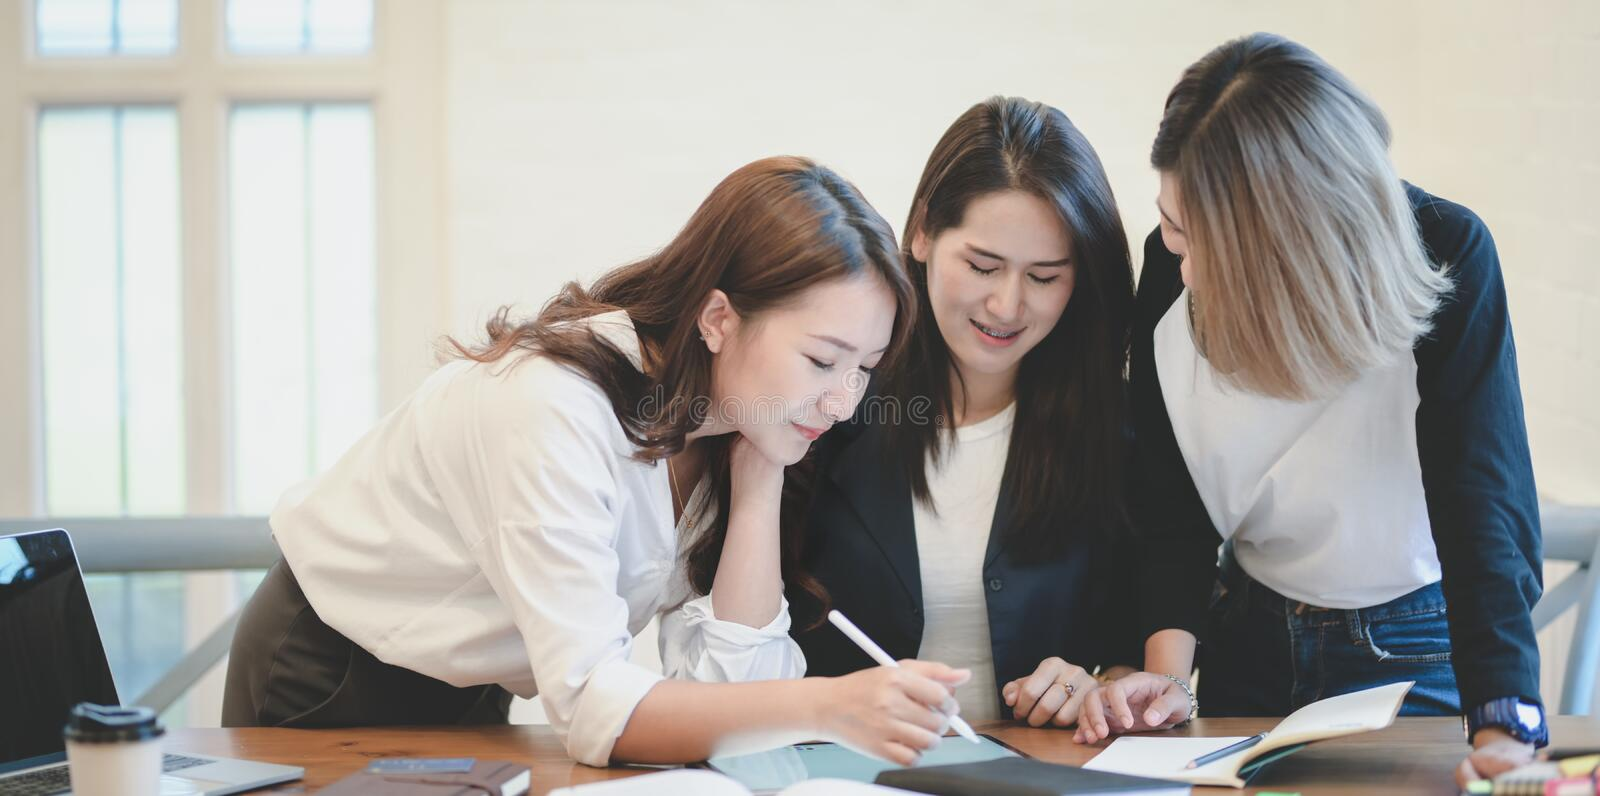 Professional startup team brainstorming the plan together with positive attitude royalty free stock images